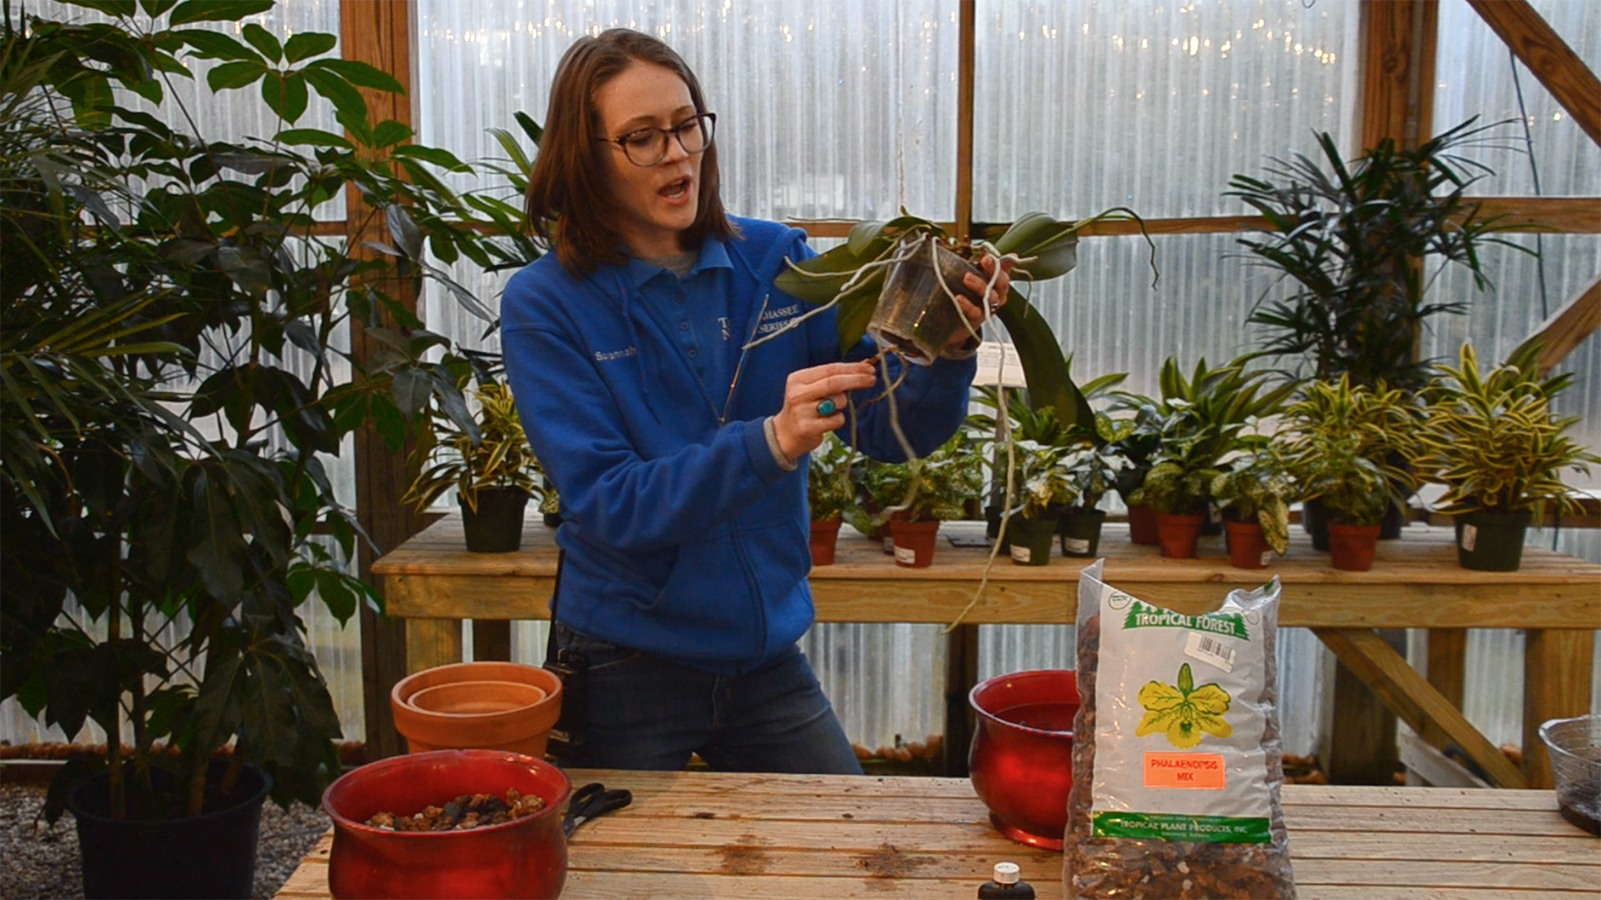 Samantha Atwell in greenhouse holding orchid plant